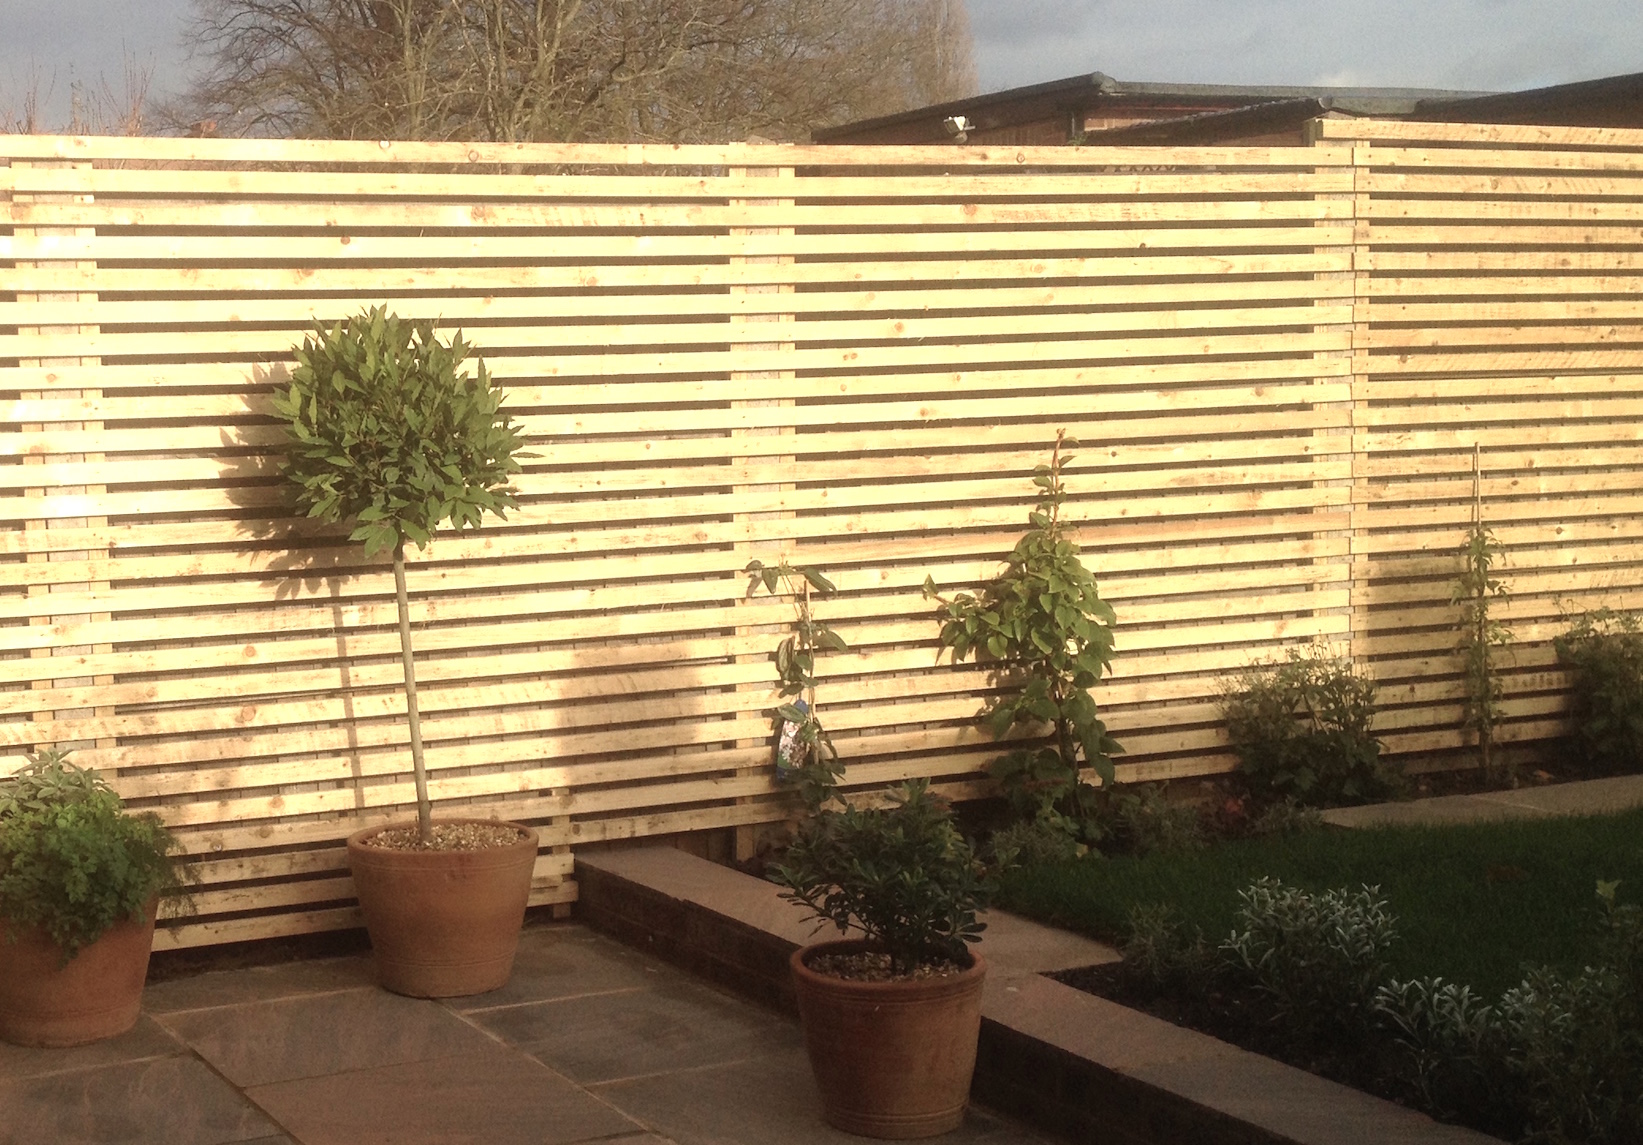 Slatted trellis screening